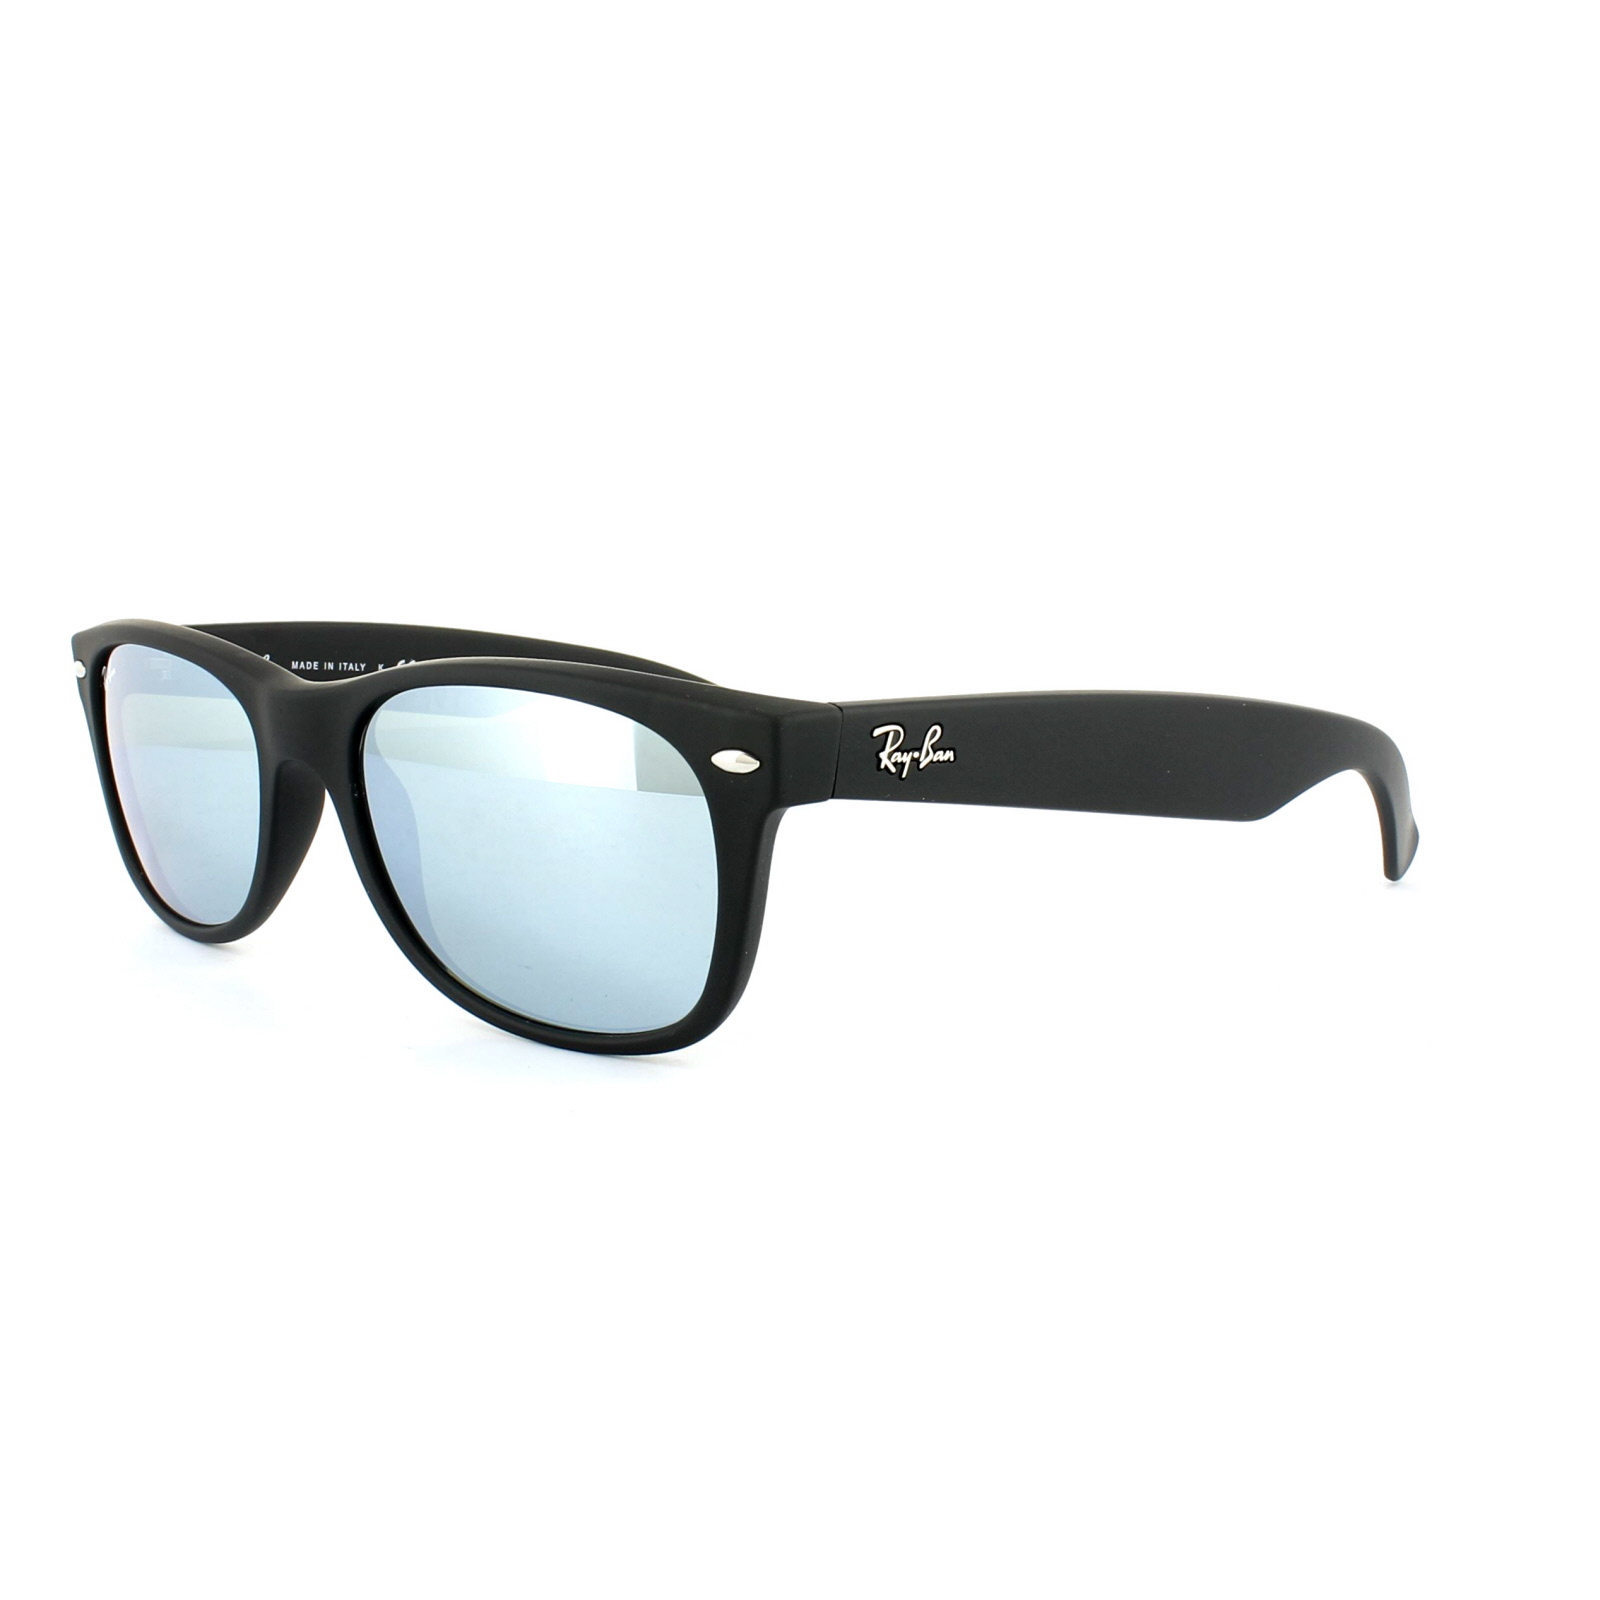 0ead64e4088 Sentinel Ray-Ban Sunglasses New Wayfarer 2132 622 30 Rubber Black Silver  Flash Mirror S